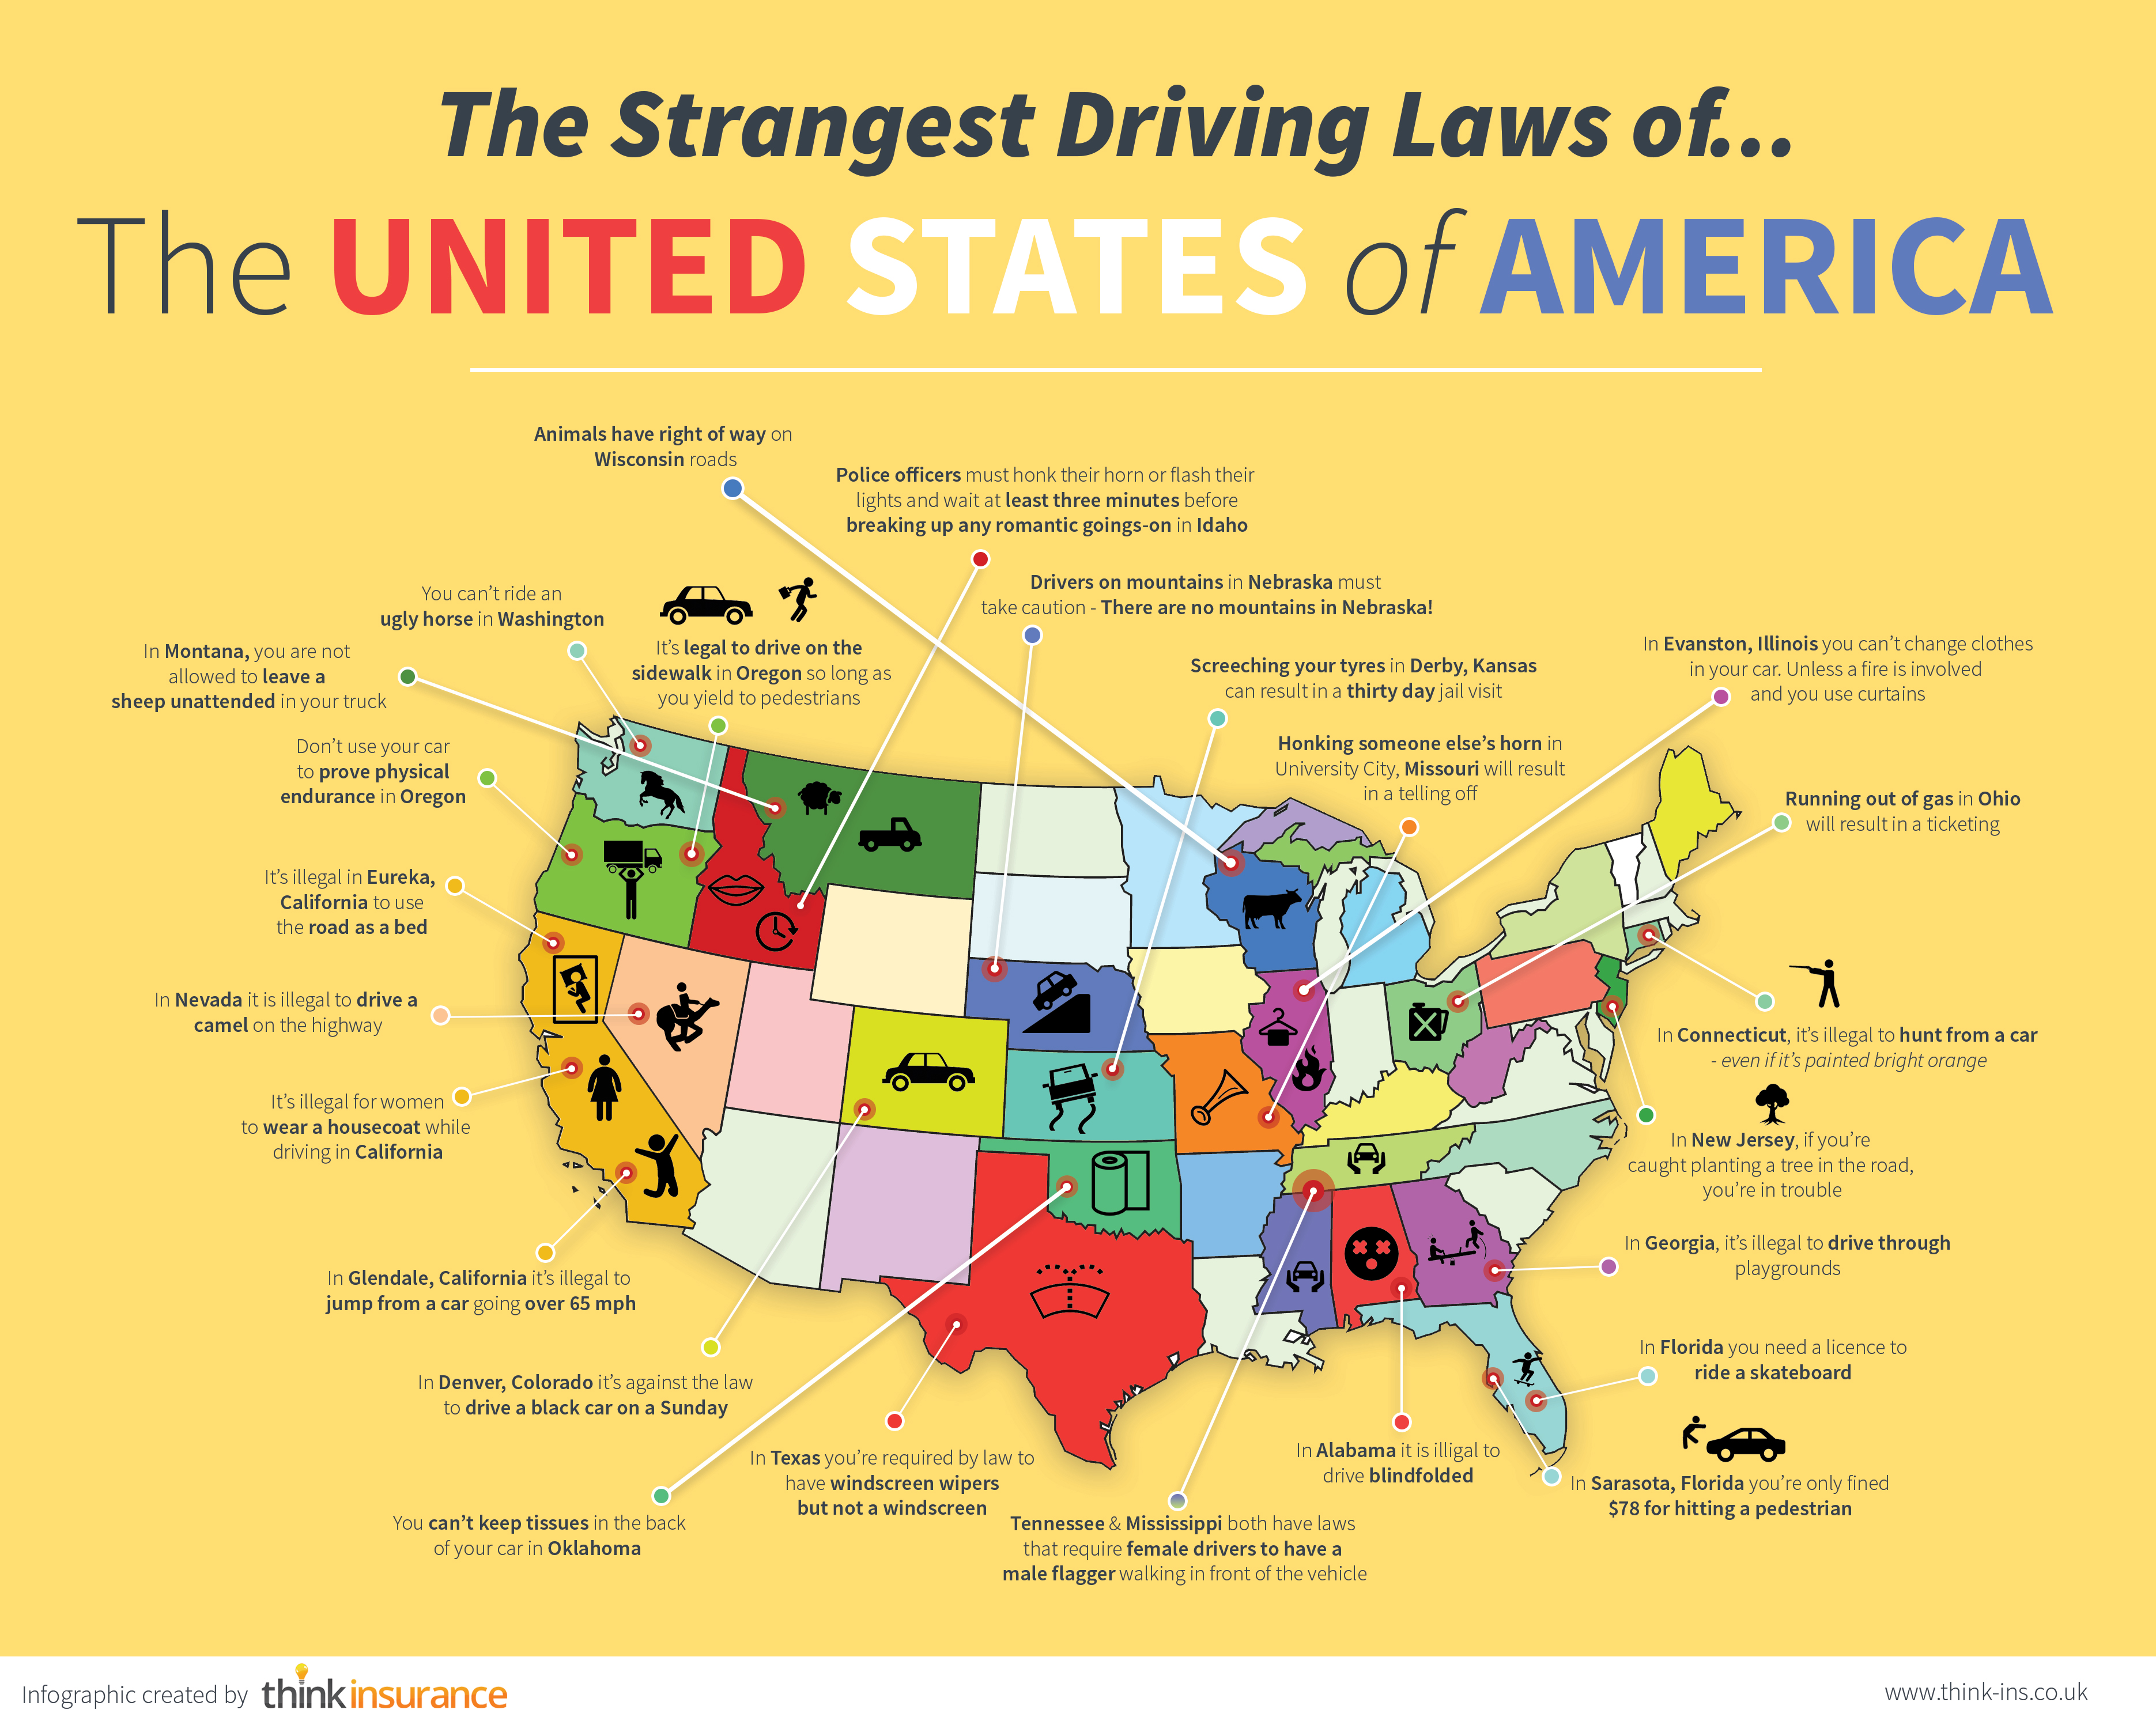 the legislation in the united states of america The united states of america is the third largest country in the world (by population) it is a federal republic made up of 50 states 48 of these are contiguous, on the continent of north america, but alaska and hawaii are not physically connected to the rest of the states.